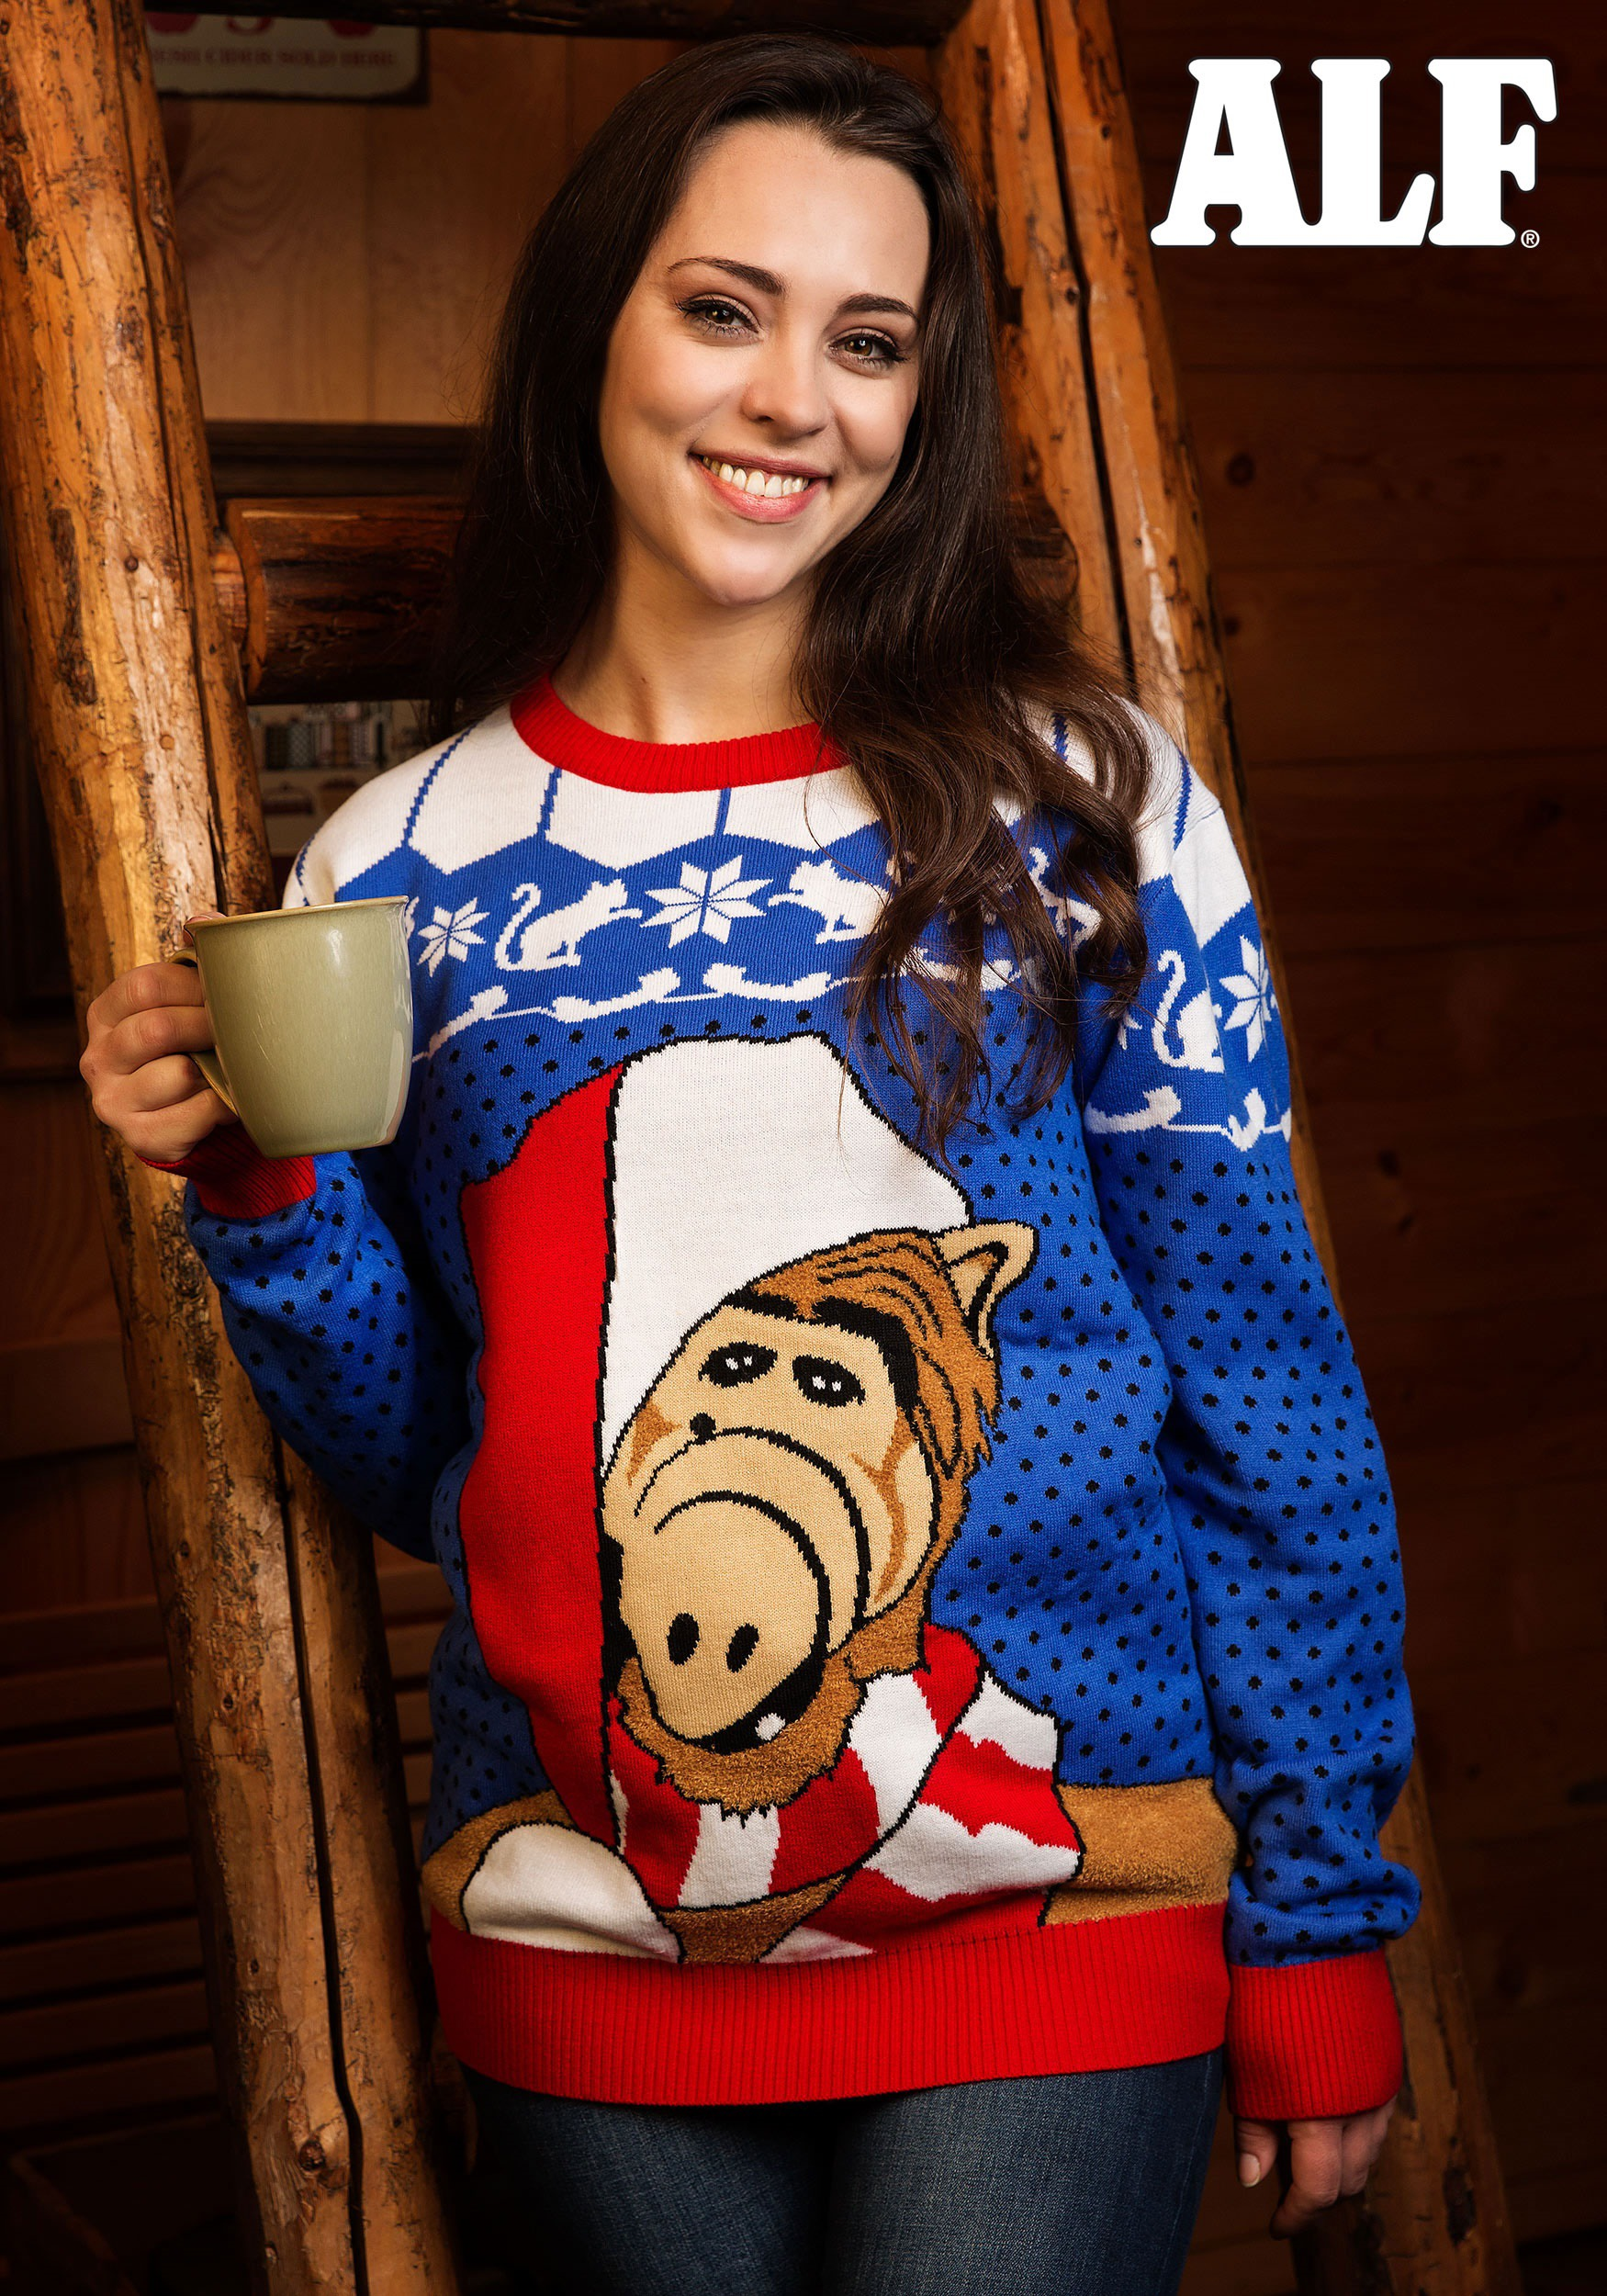 A fugly ALF Christmas Sweater exists